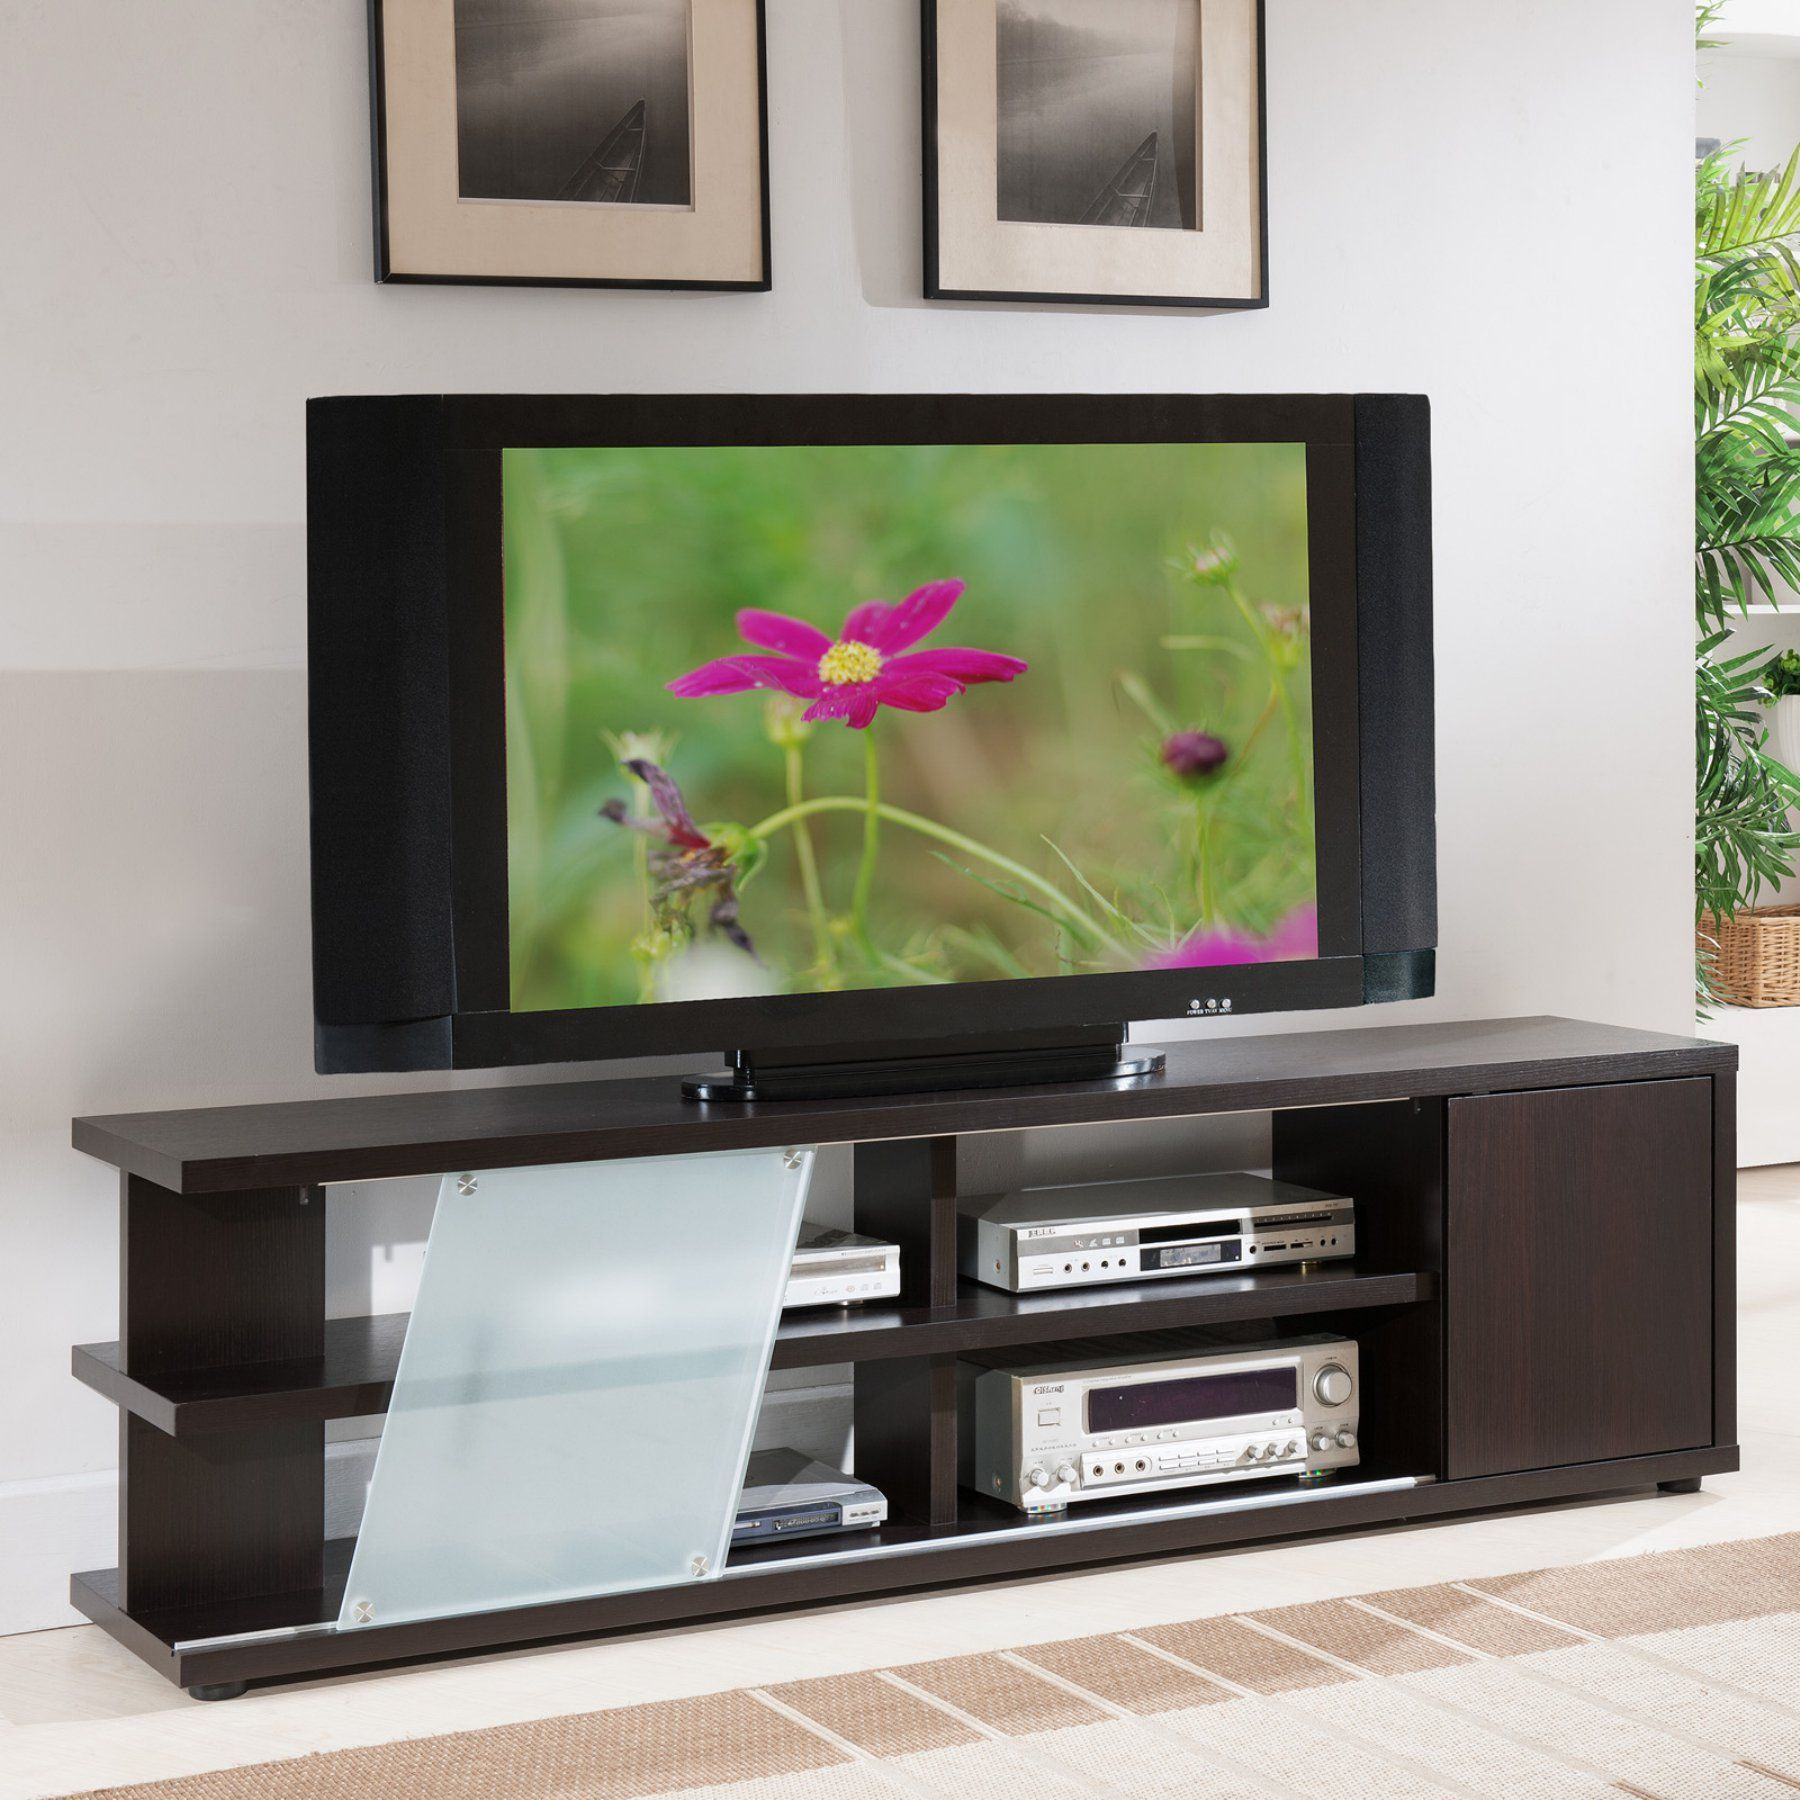 Furniture of america griffith multi storage tv stand cappuccino